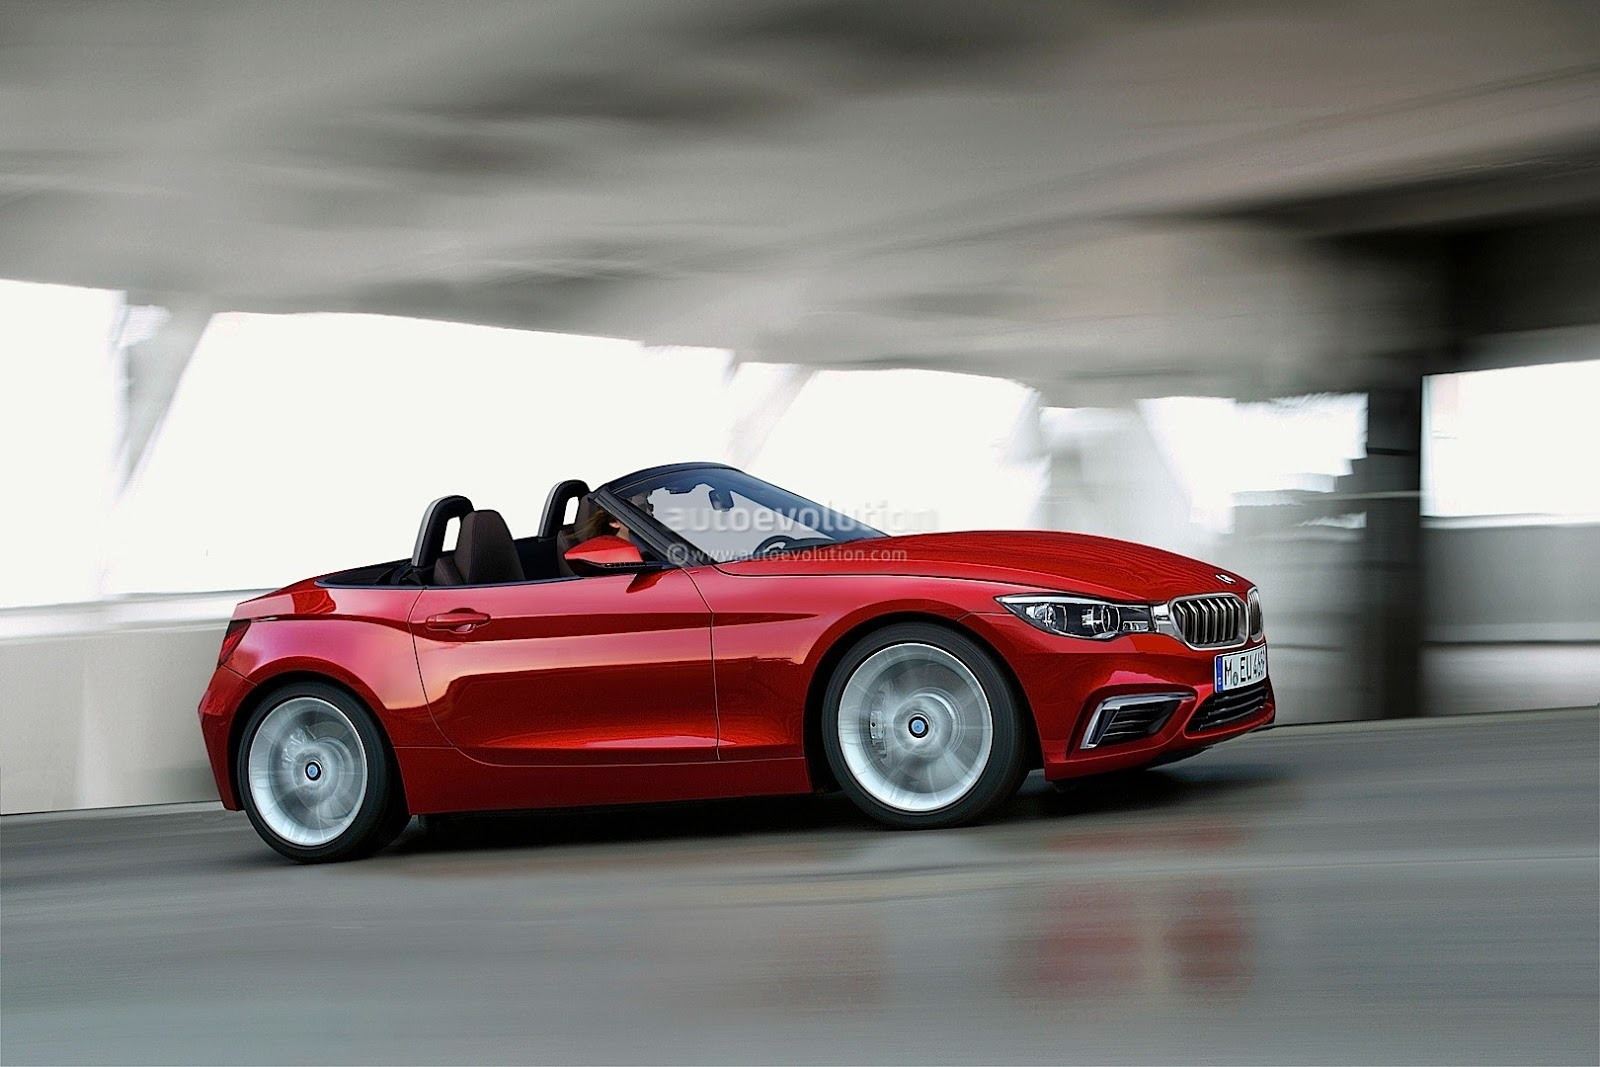 2014 Bmw Z2 Roadster Car Review Car Wallpaper